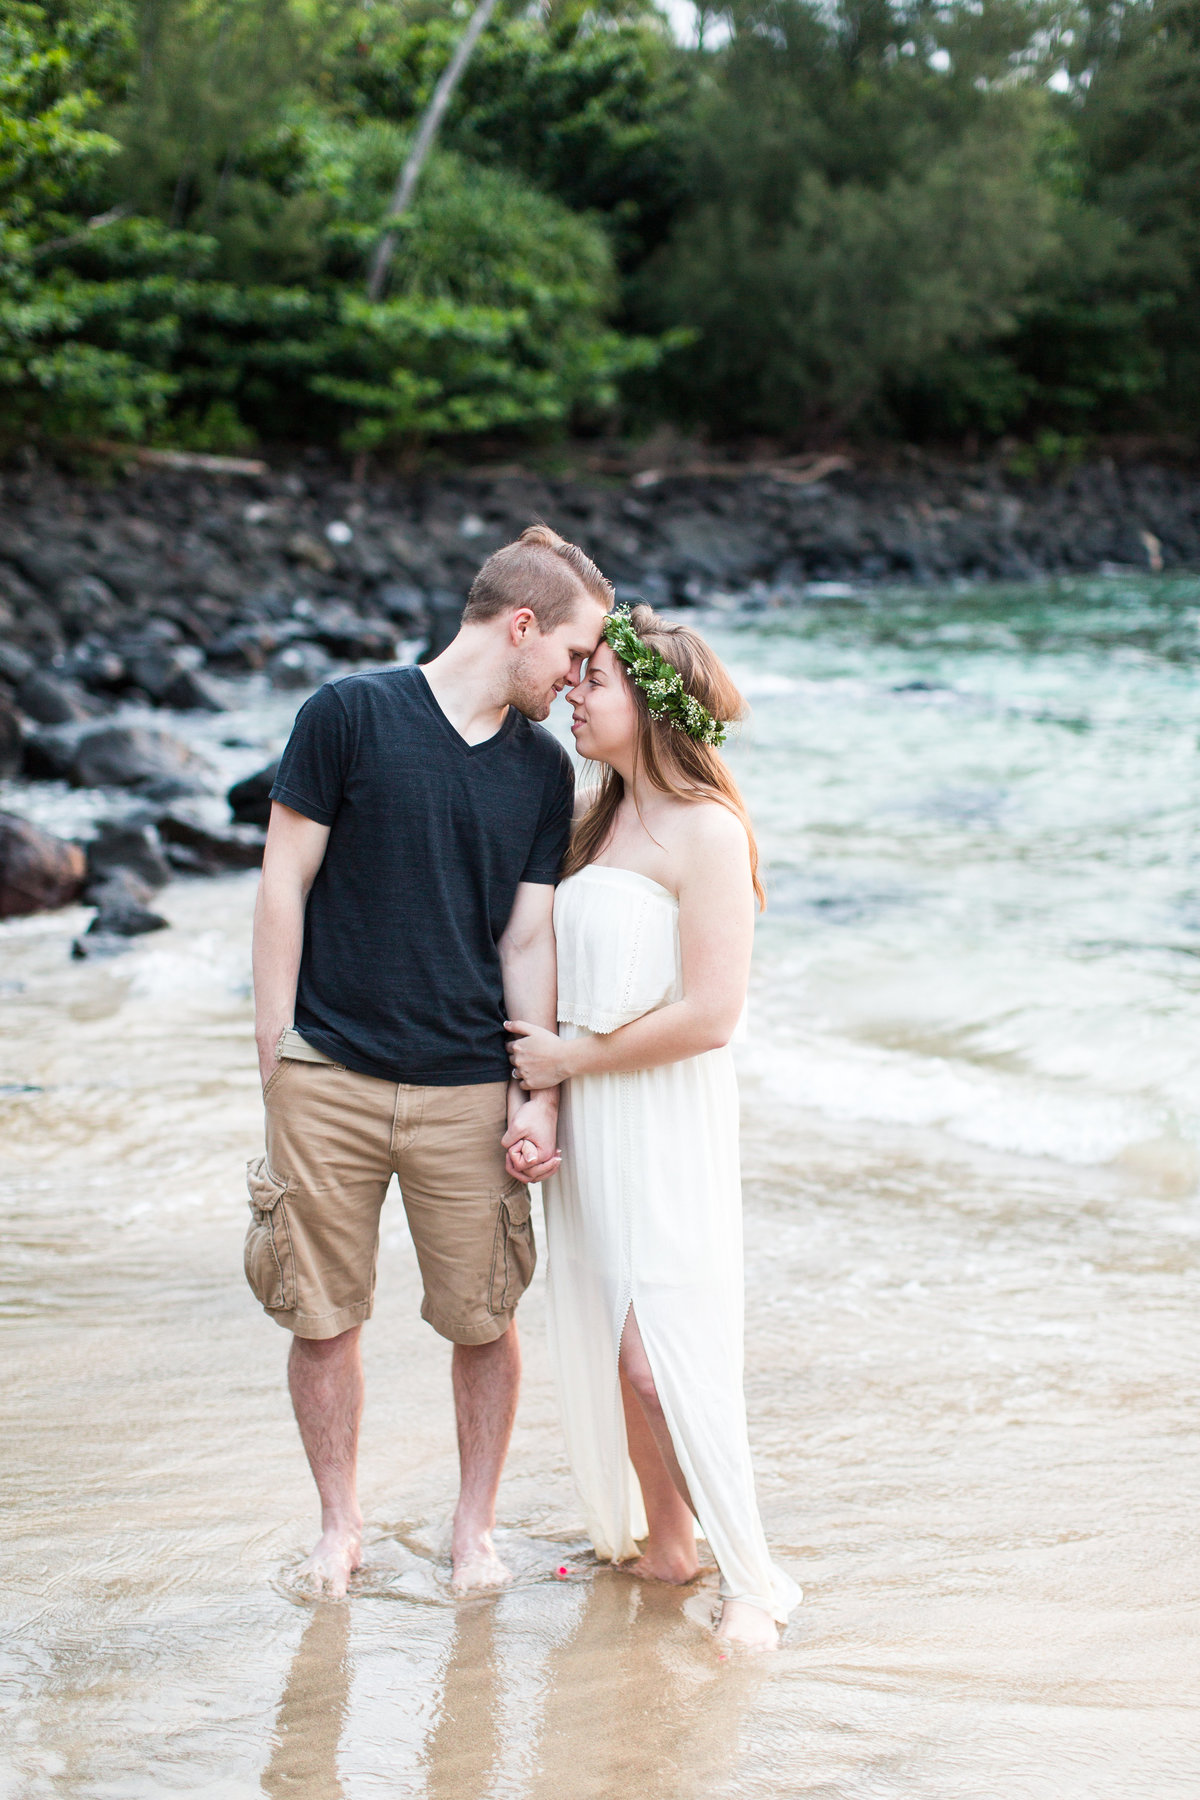 Joel and Kelly Engaged-Samantha Laffoon Photography-140